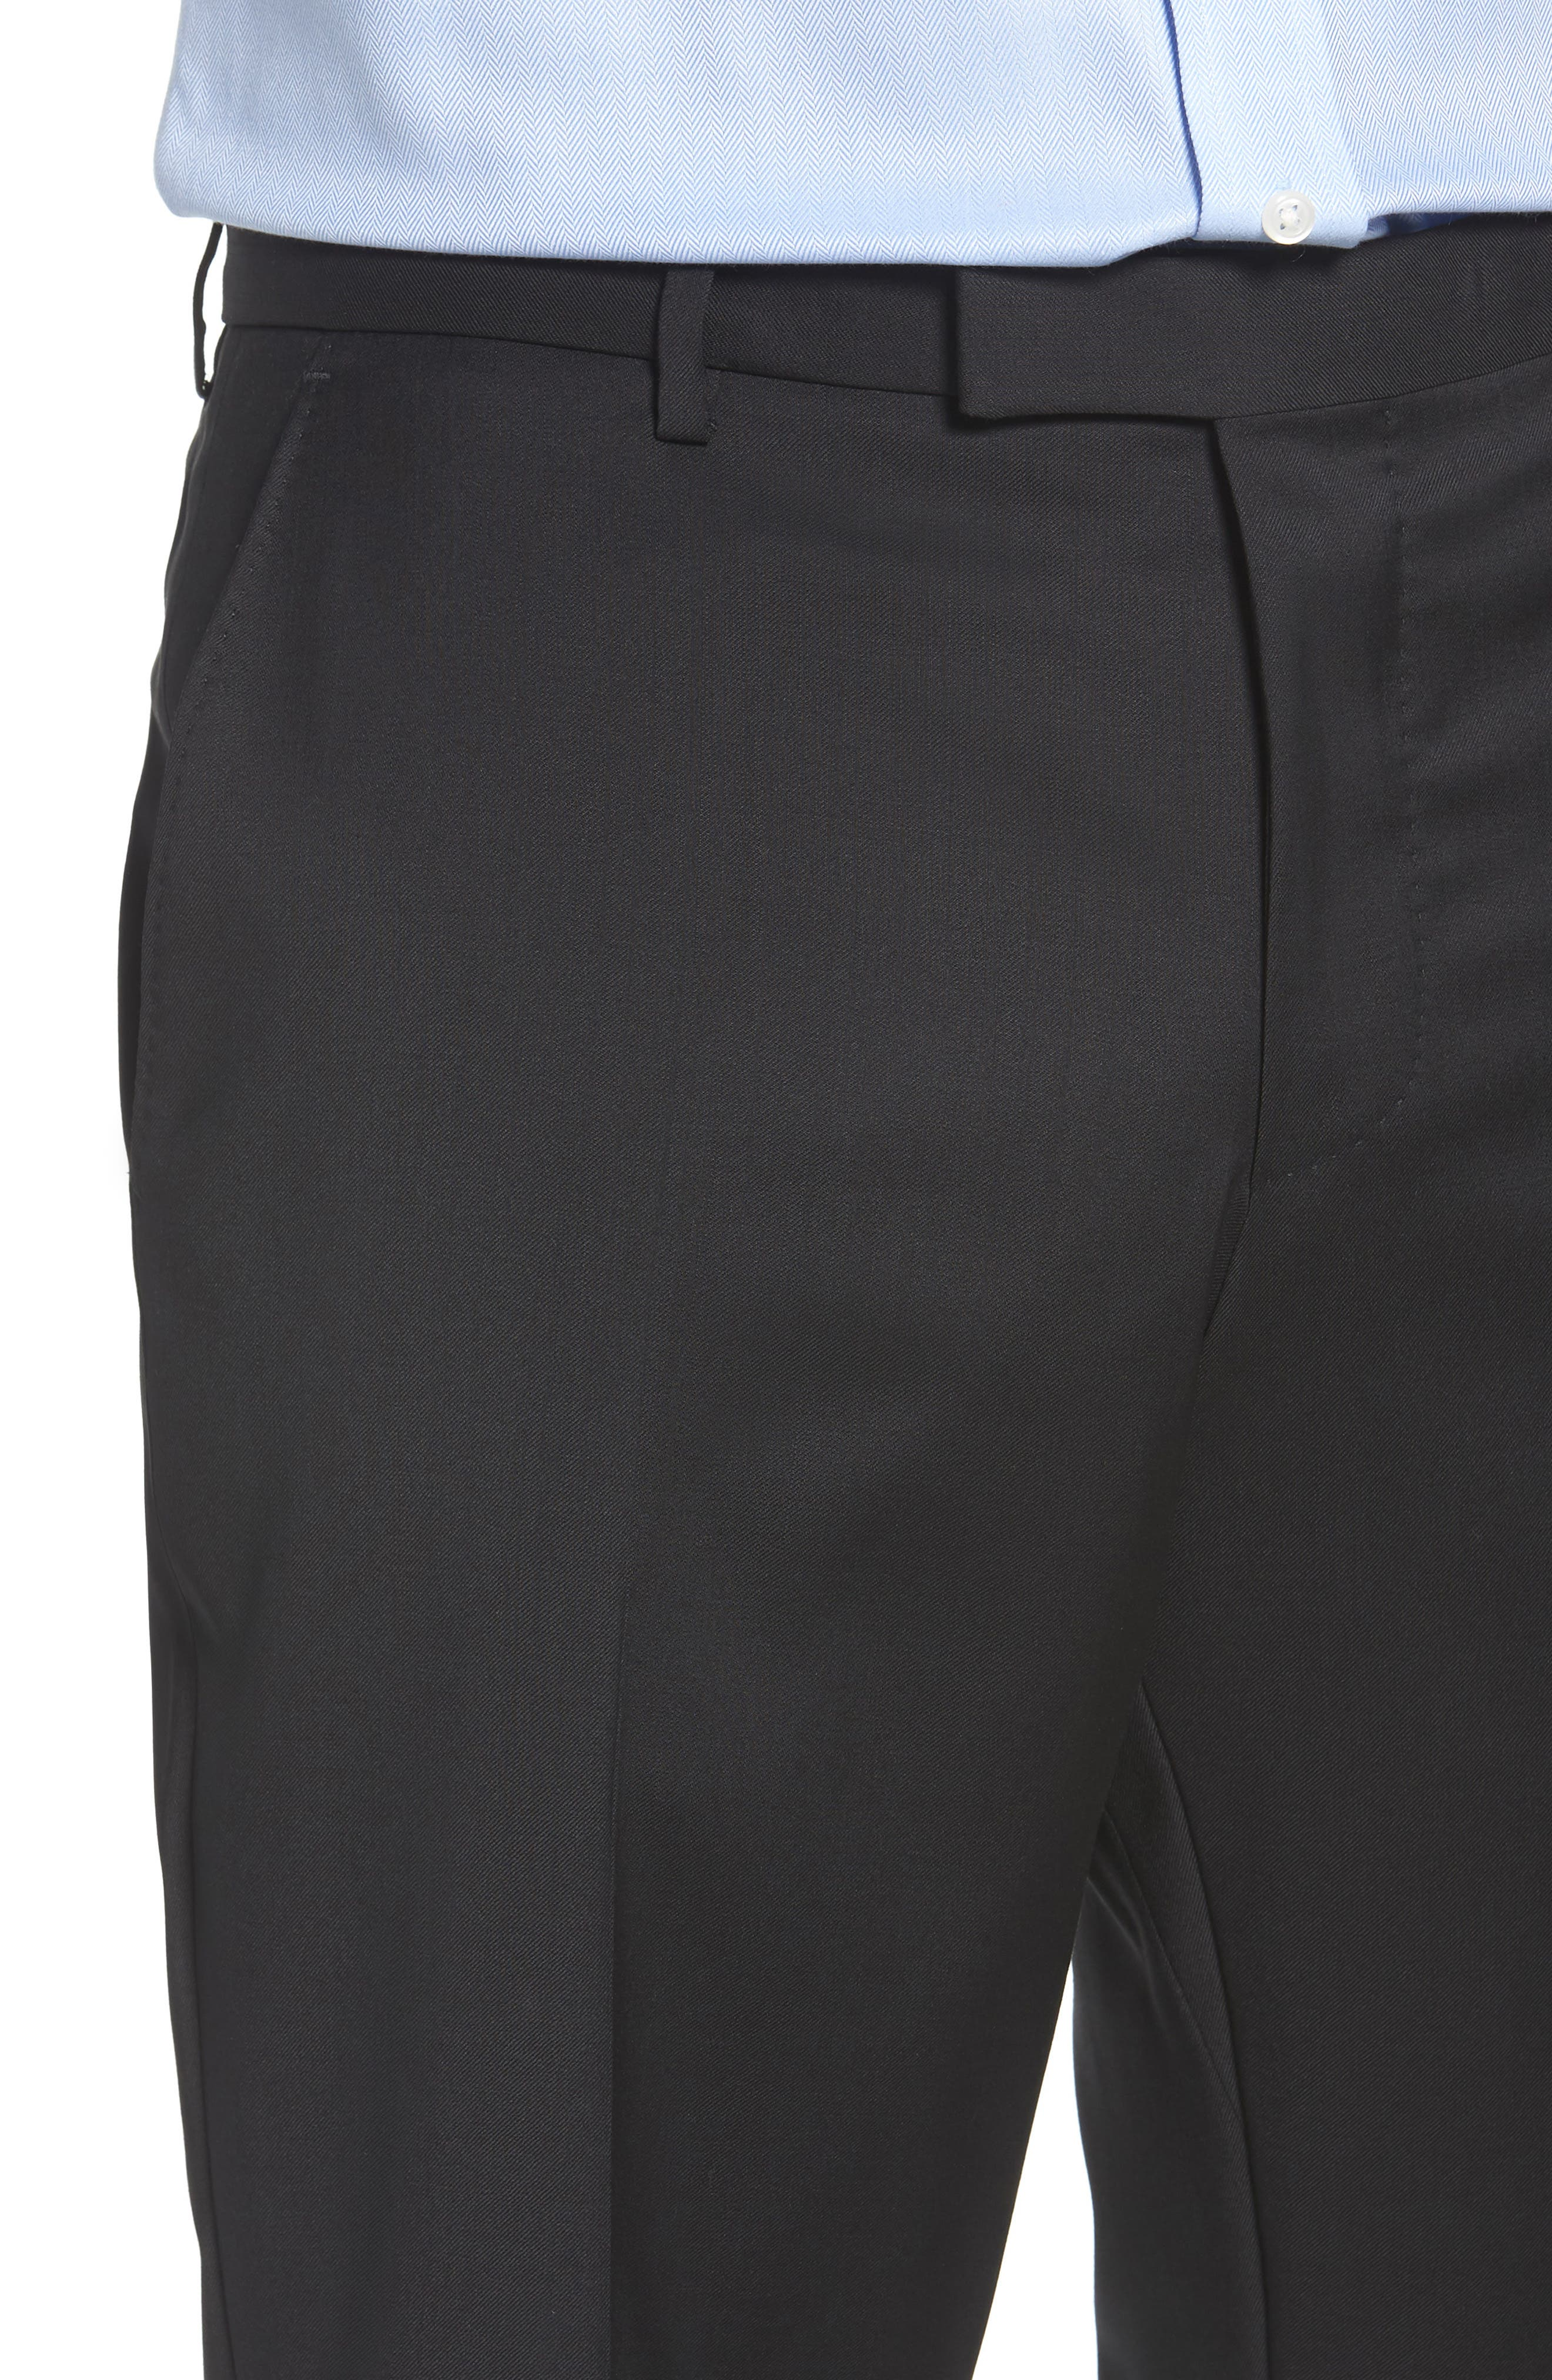 Leenon Flat Front Regular Fit Solid Wool Trousers,                             Alternate thumbnail 4, color,                             BLACK